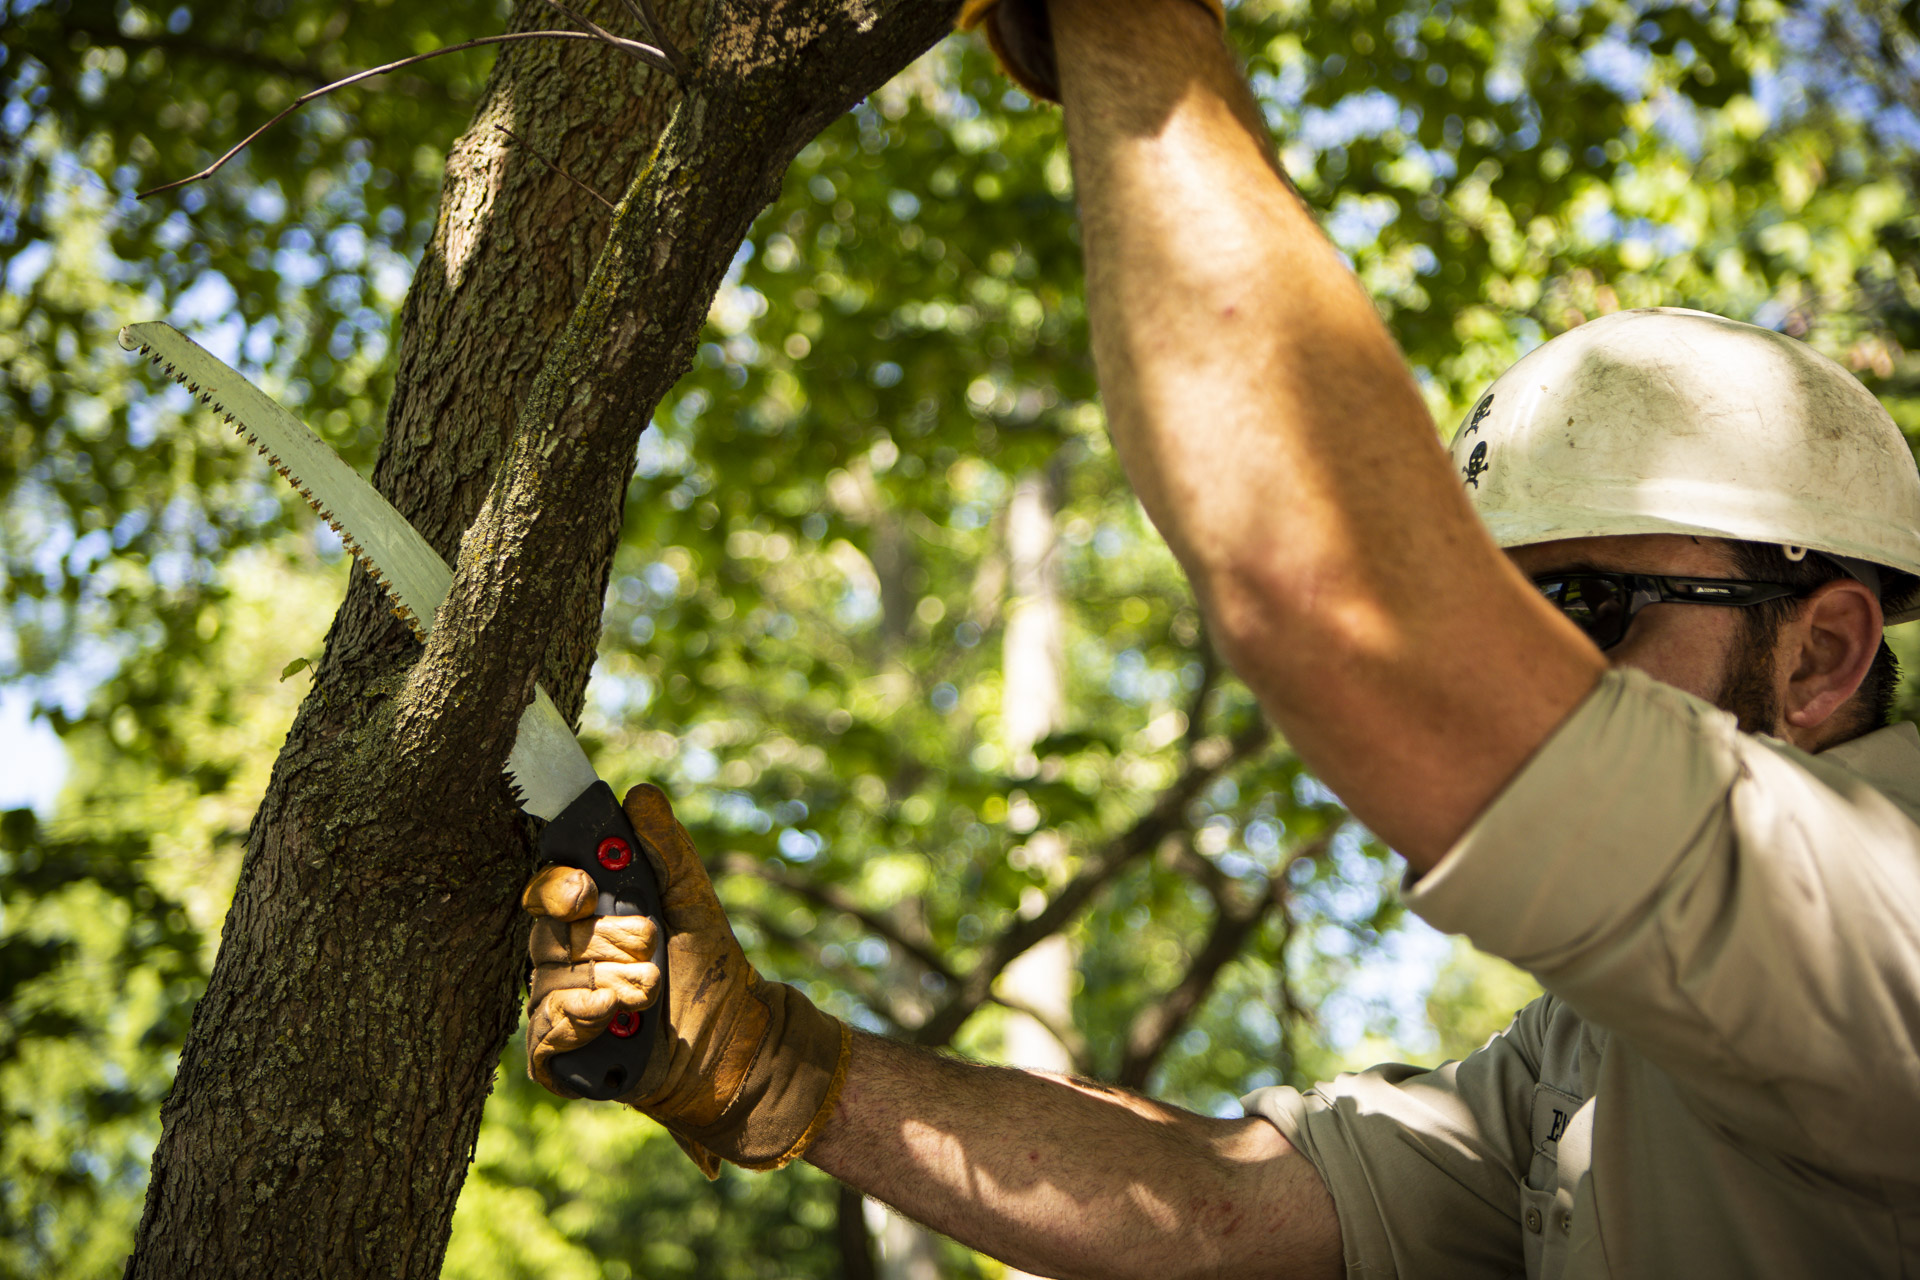 Tree pruning crew removing dead limbs